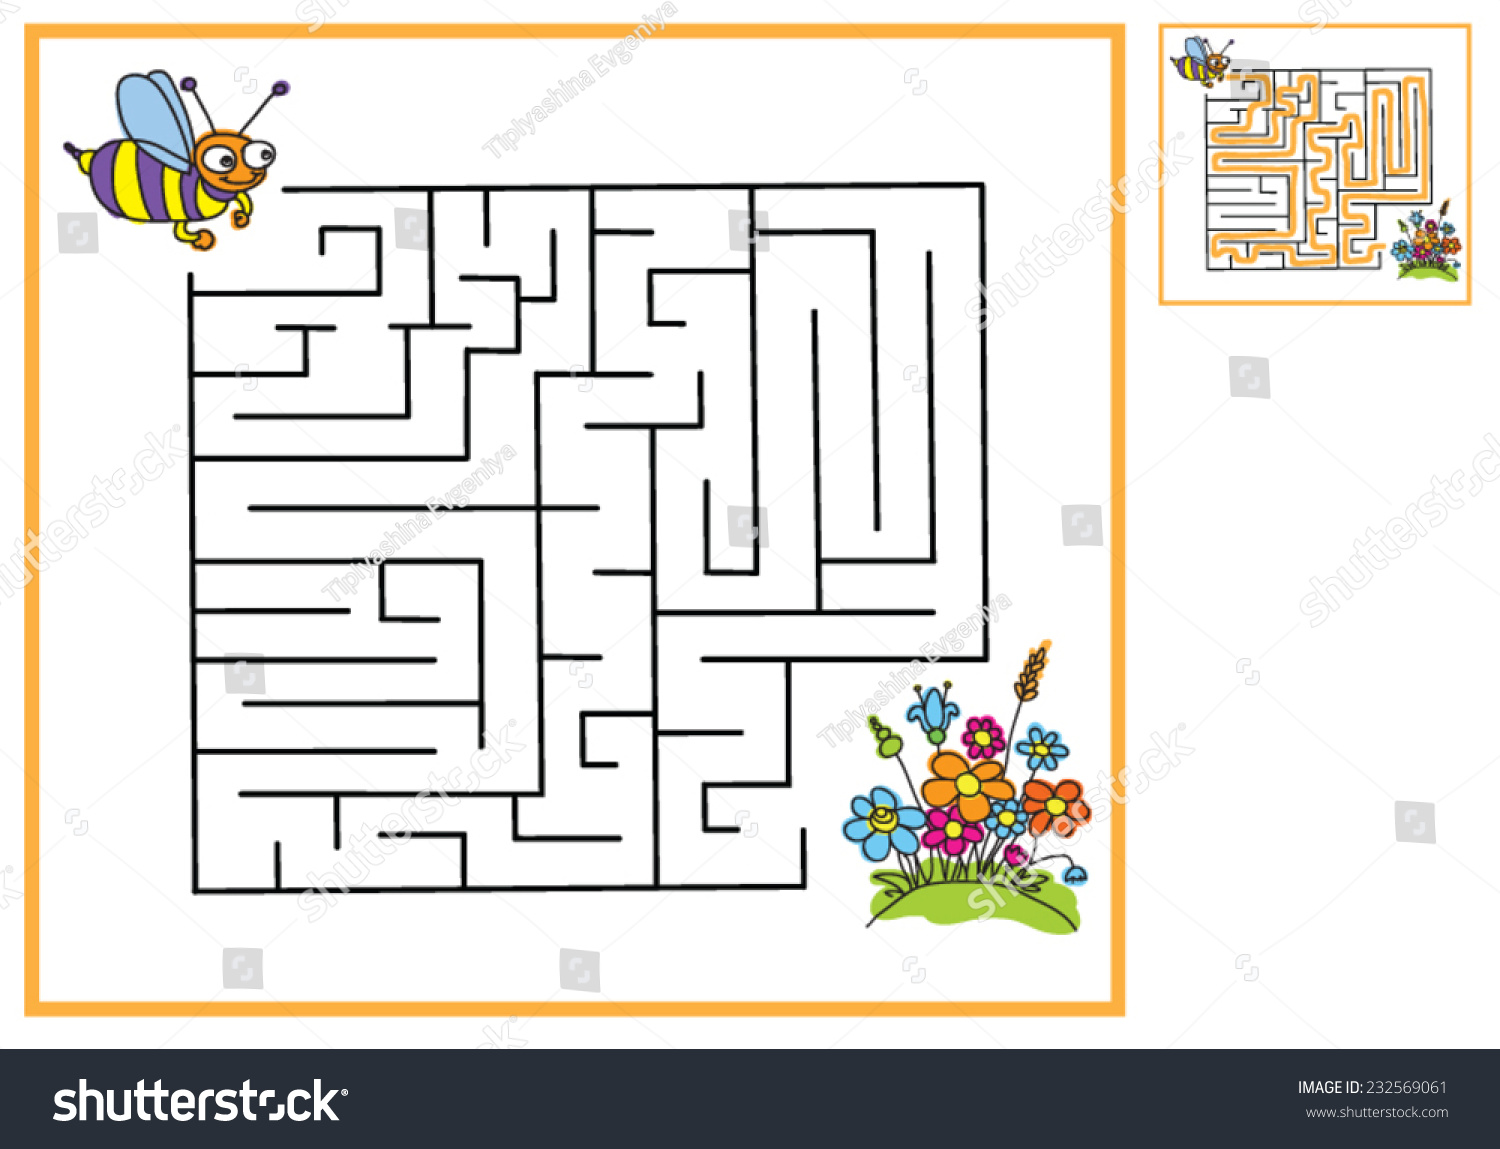 Find Way Bees Flowers Maze Game Stock Vector